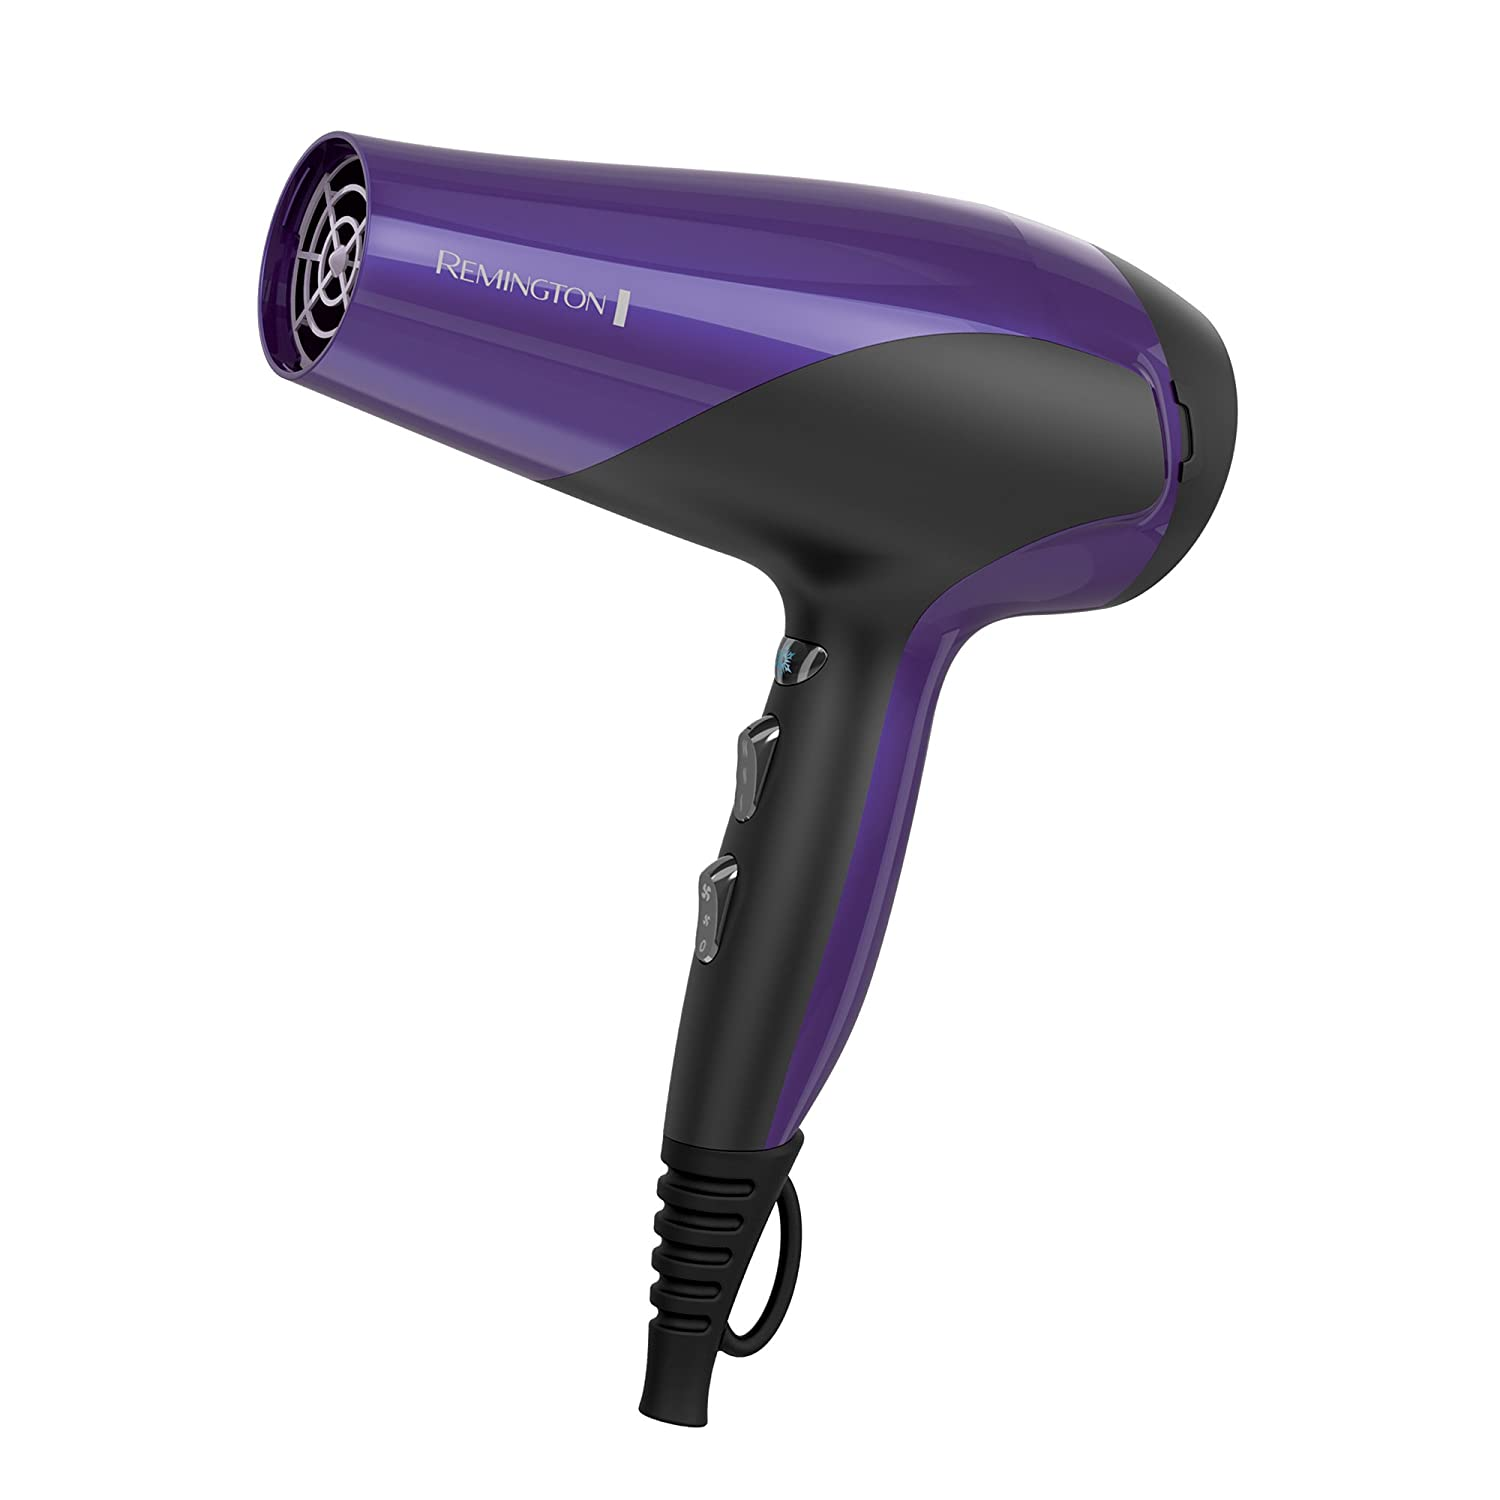 Remington Hair Dryer with Ionic + Ceramic + Tourmaline Technology, Purple, D3190